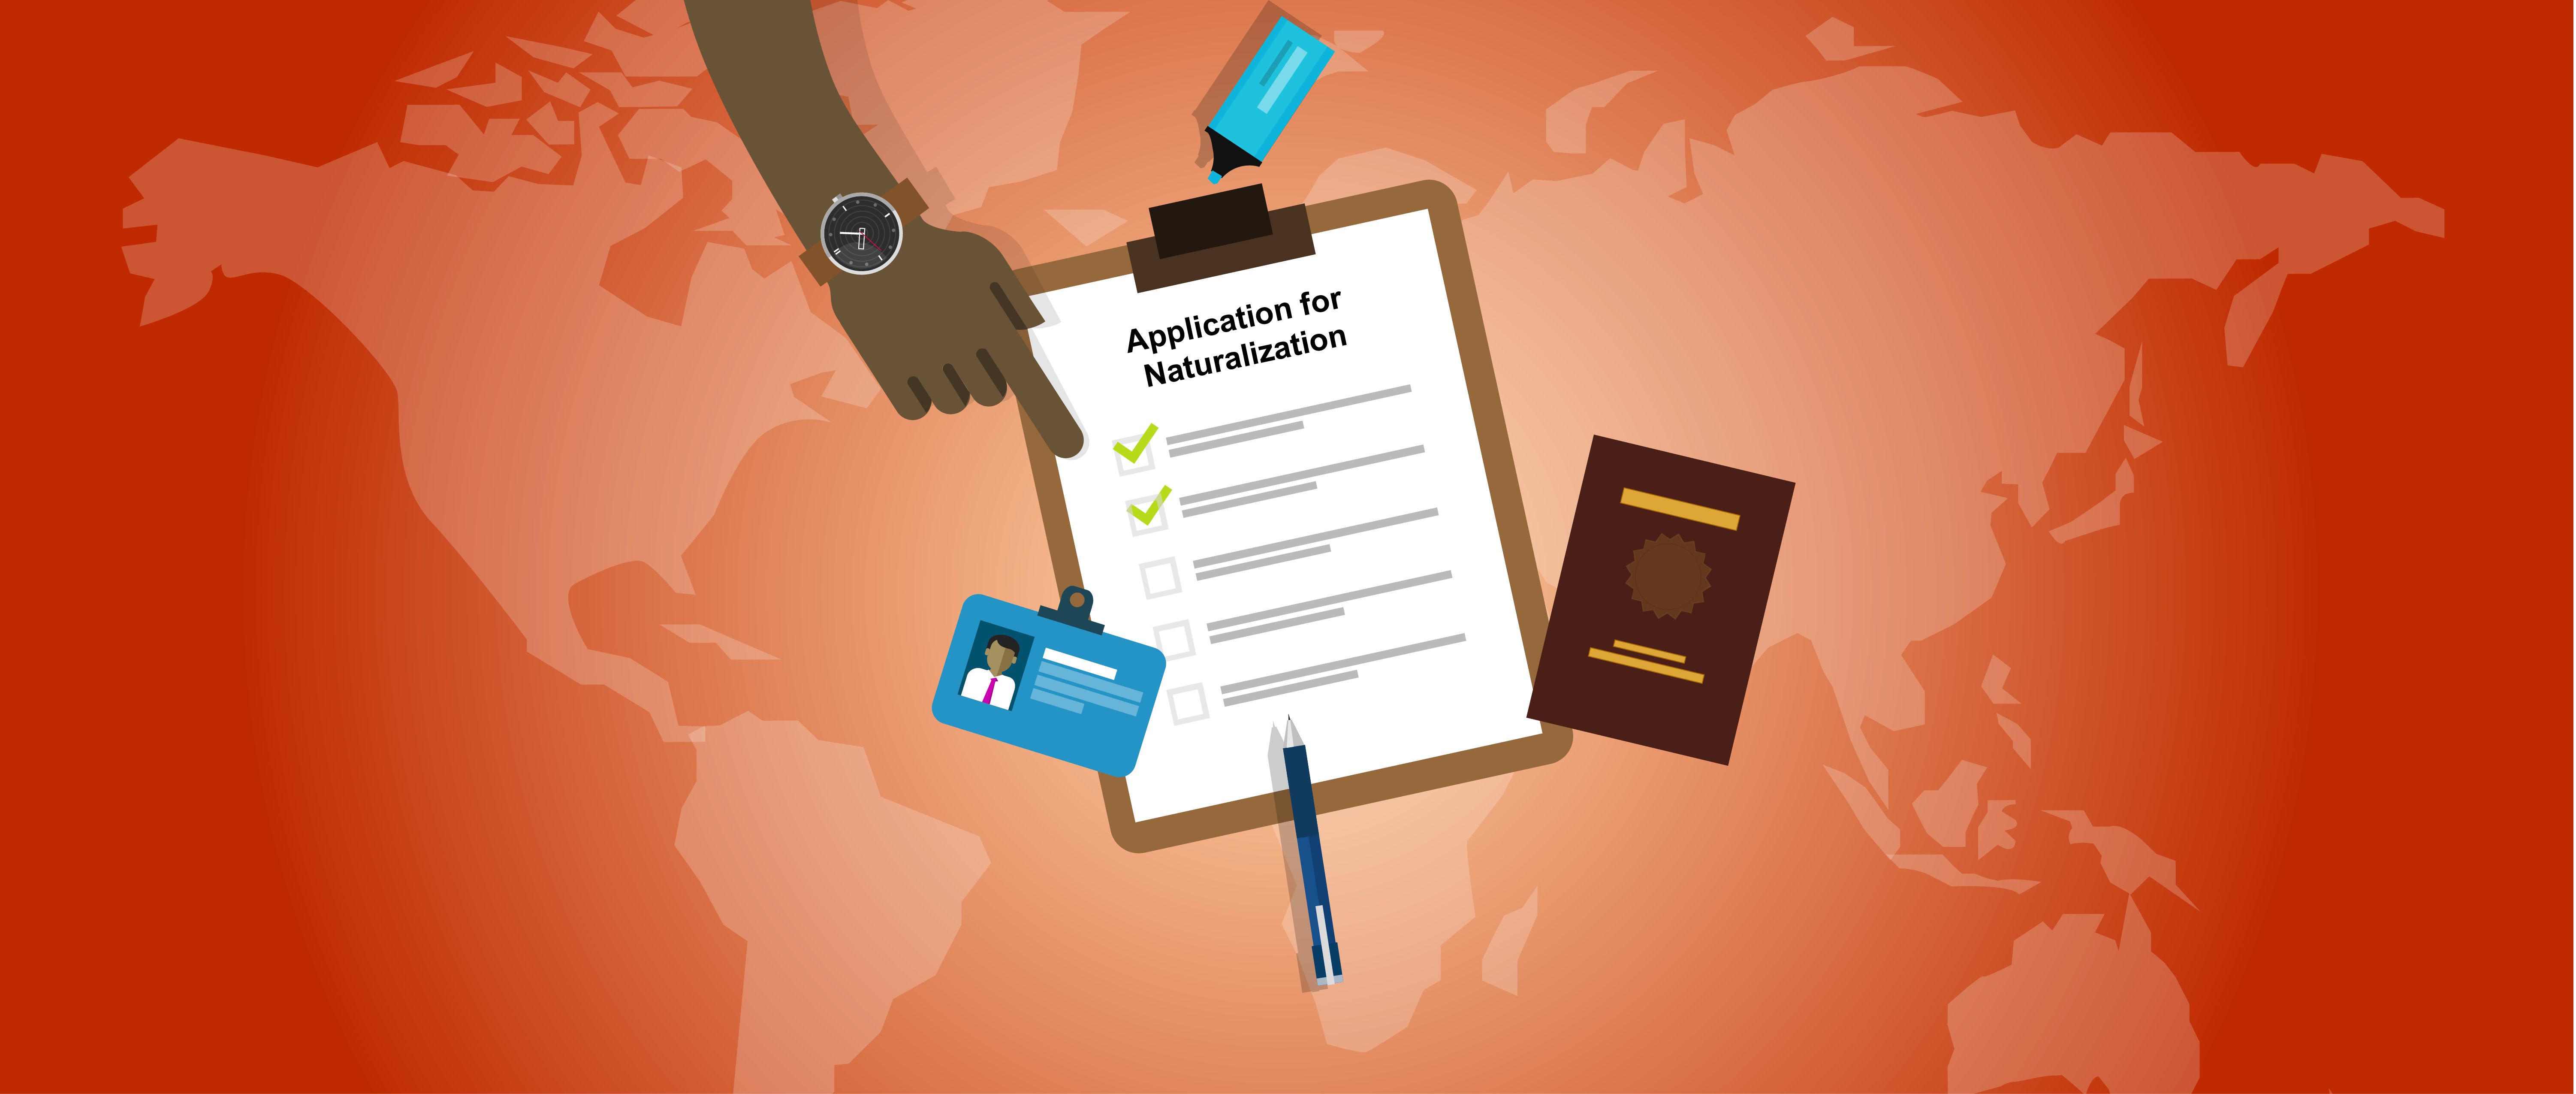 Understanding the Catalysts for Citizenship Application: Finding 5